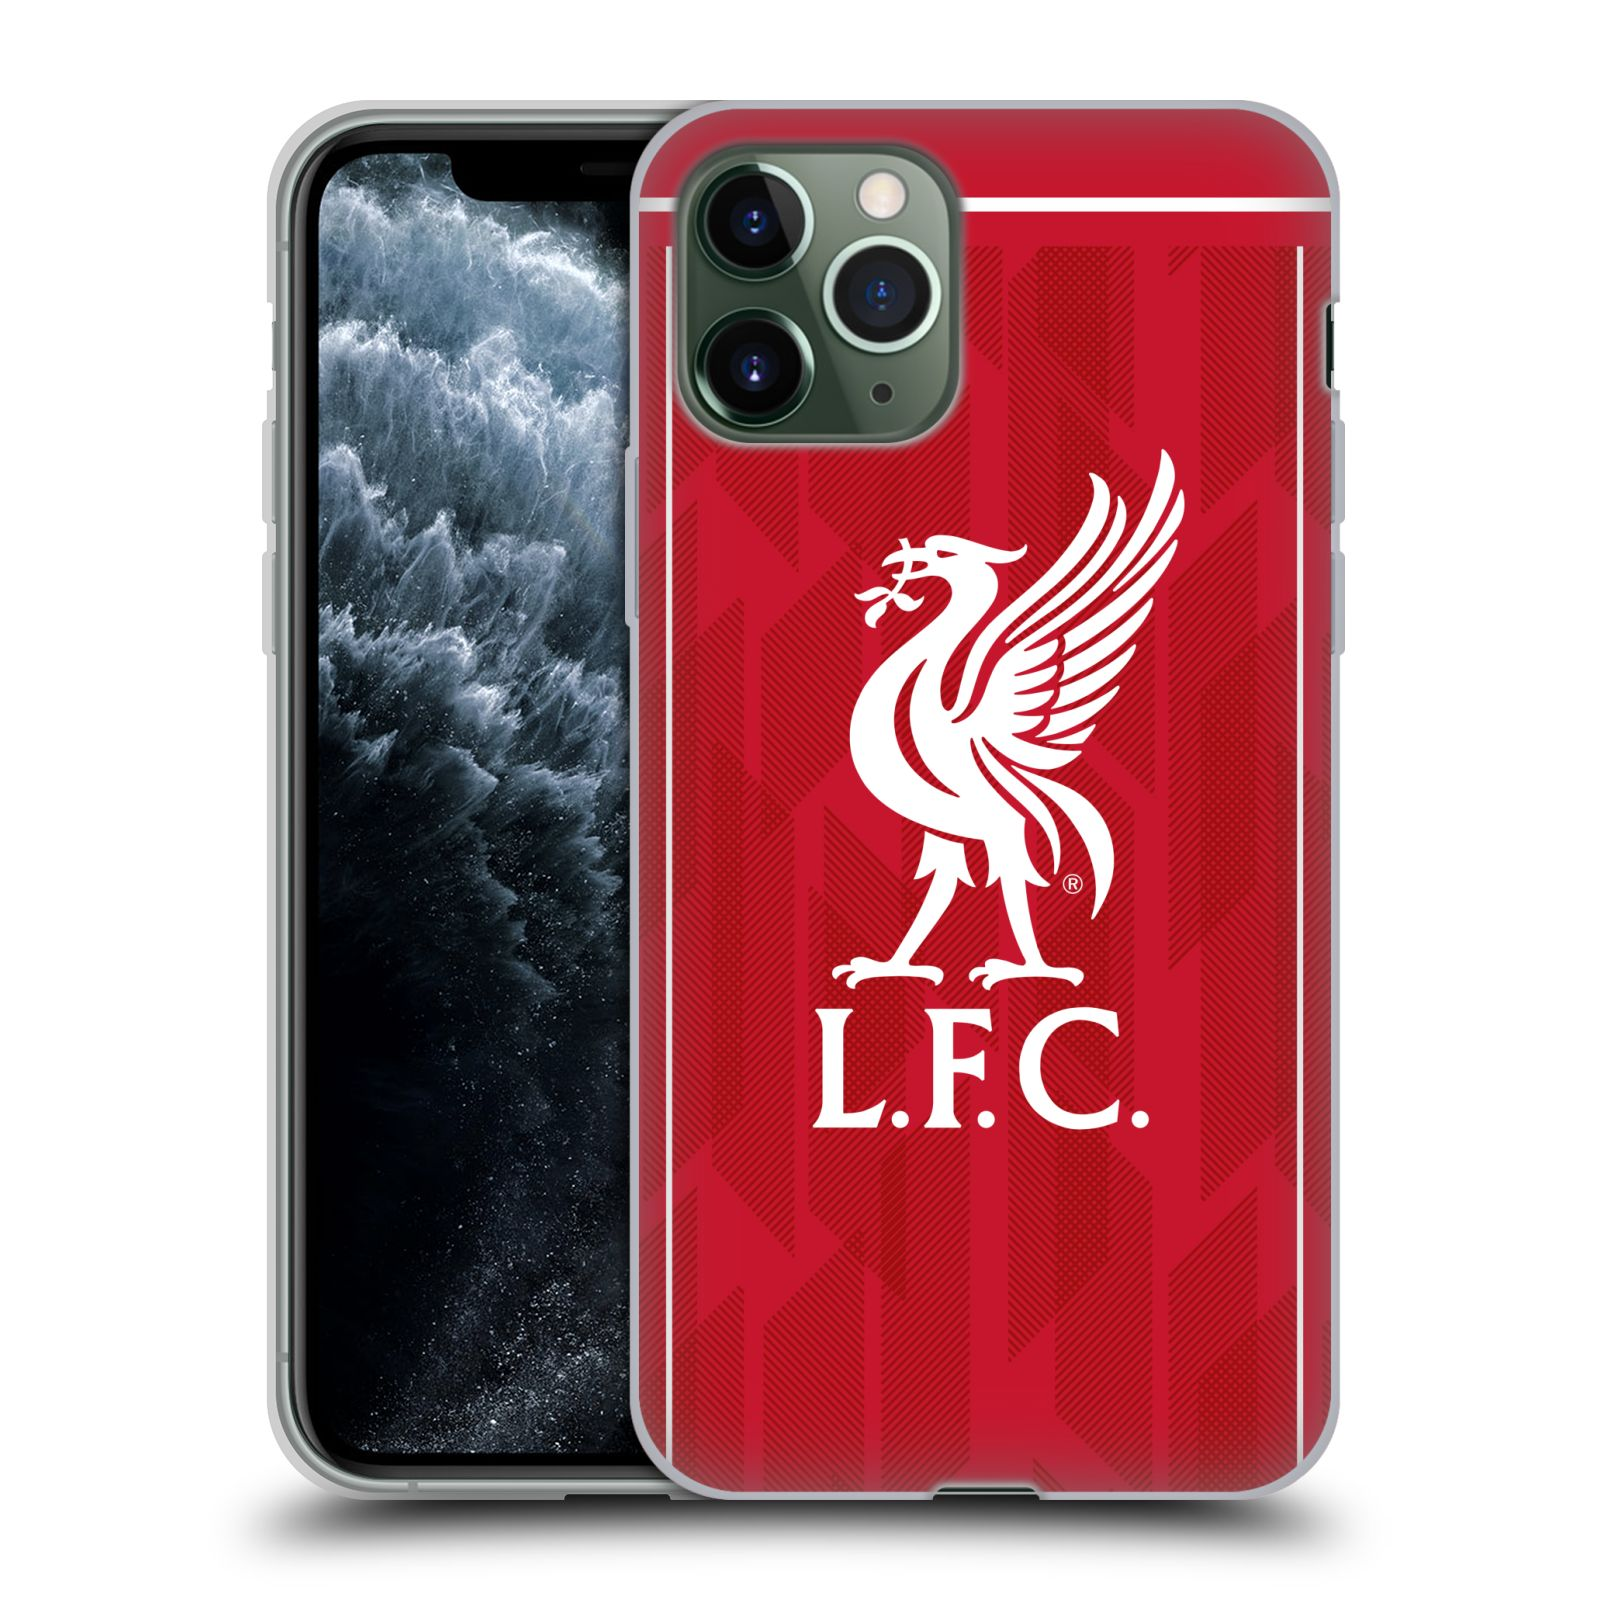 Silikonové pouzdro na mobil Apple iPhone 11 Pro - Head Case - Liverpool FC - L.F.C. Home kit